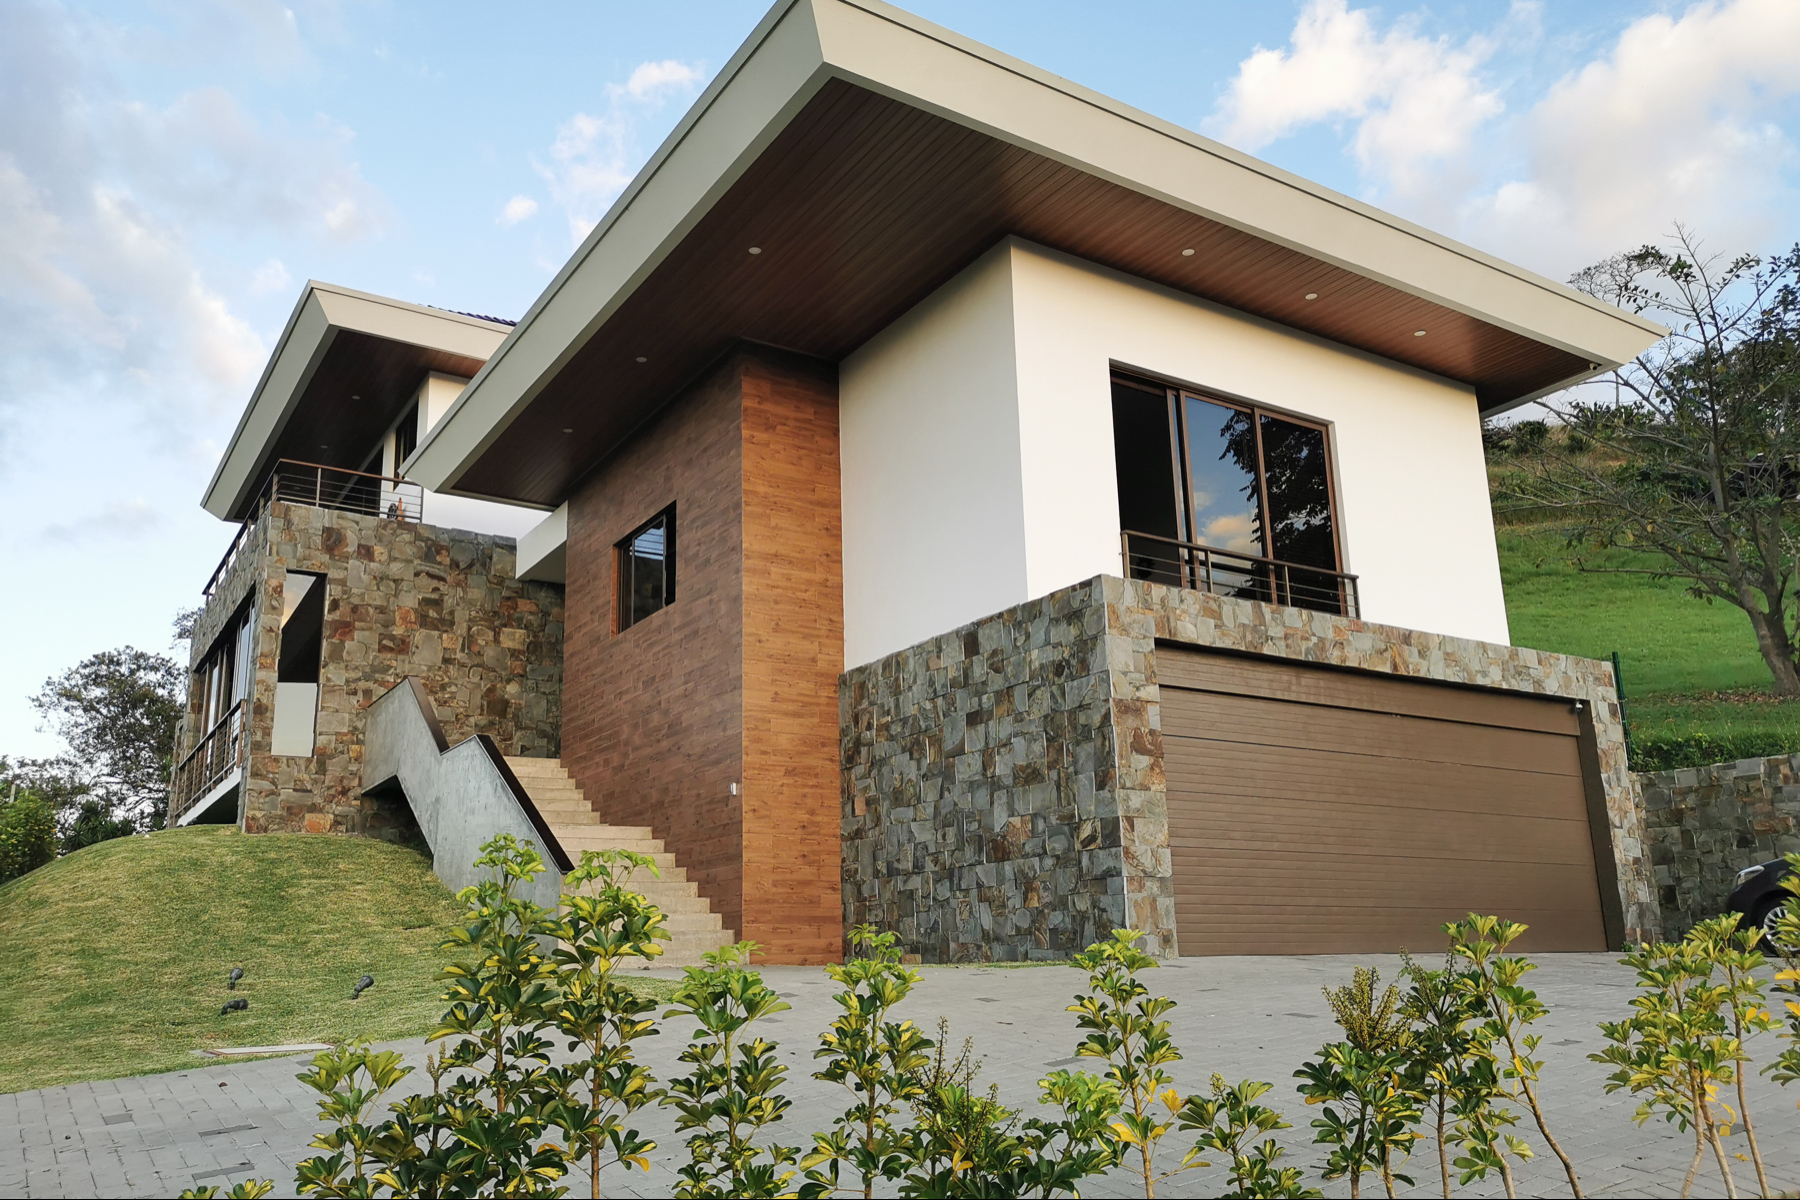 Condominiums 용 매매 에 Casa Luz - Exclusivo Condominio Altamira, Brasil de Mora Ciudad Colon, 산 호세 코스타리카